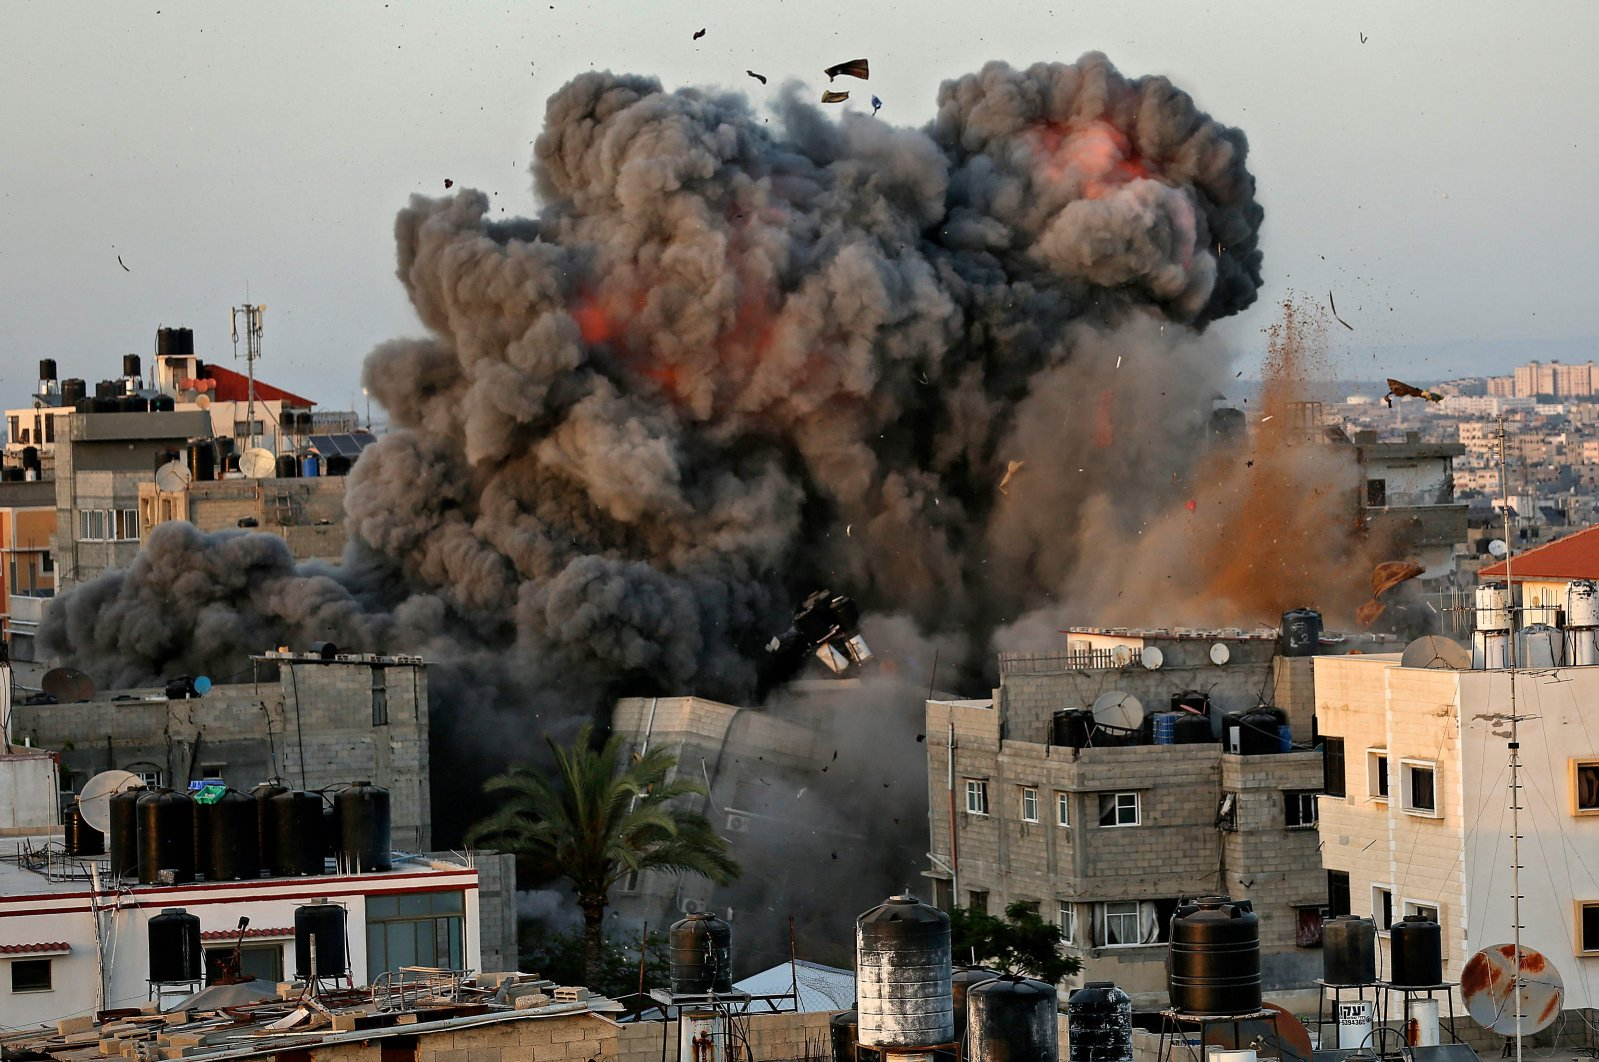 A ball of fire and thick smoke erupts following an Israeli bombardment on a building in Gaza City's Rimal residential district, Palestine, May 16, 2021. (AFP Photo)